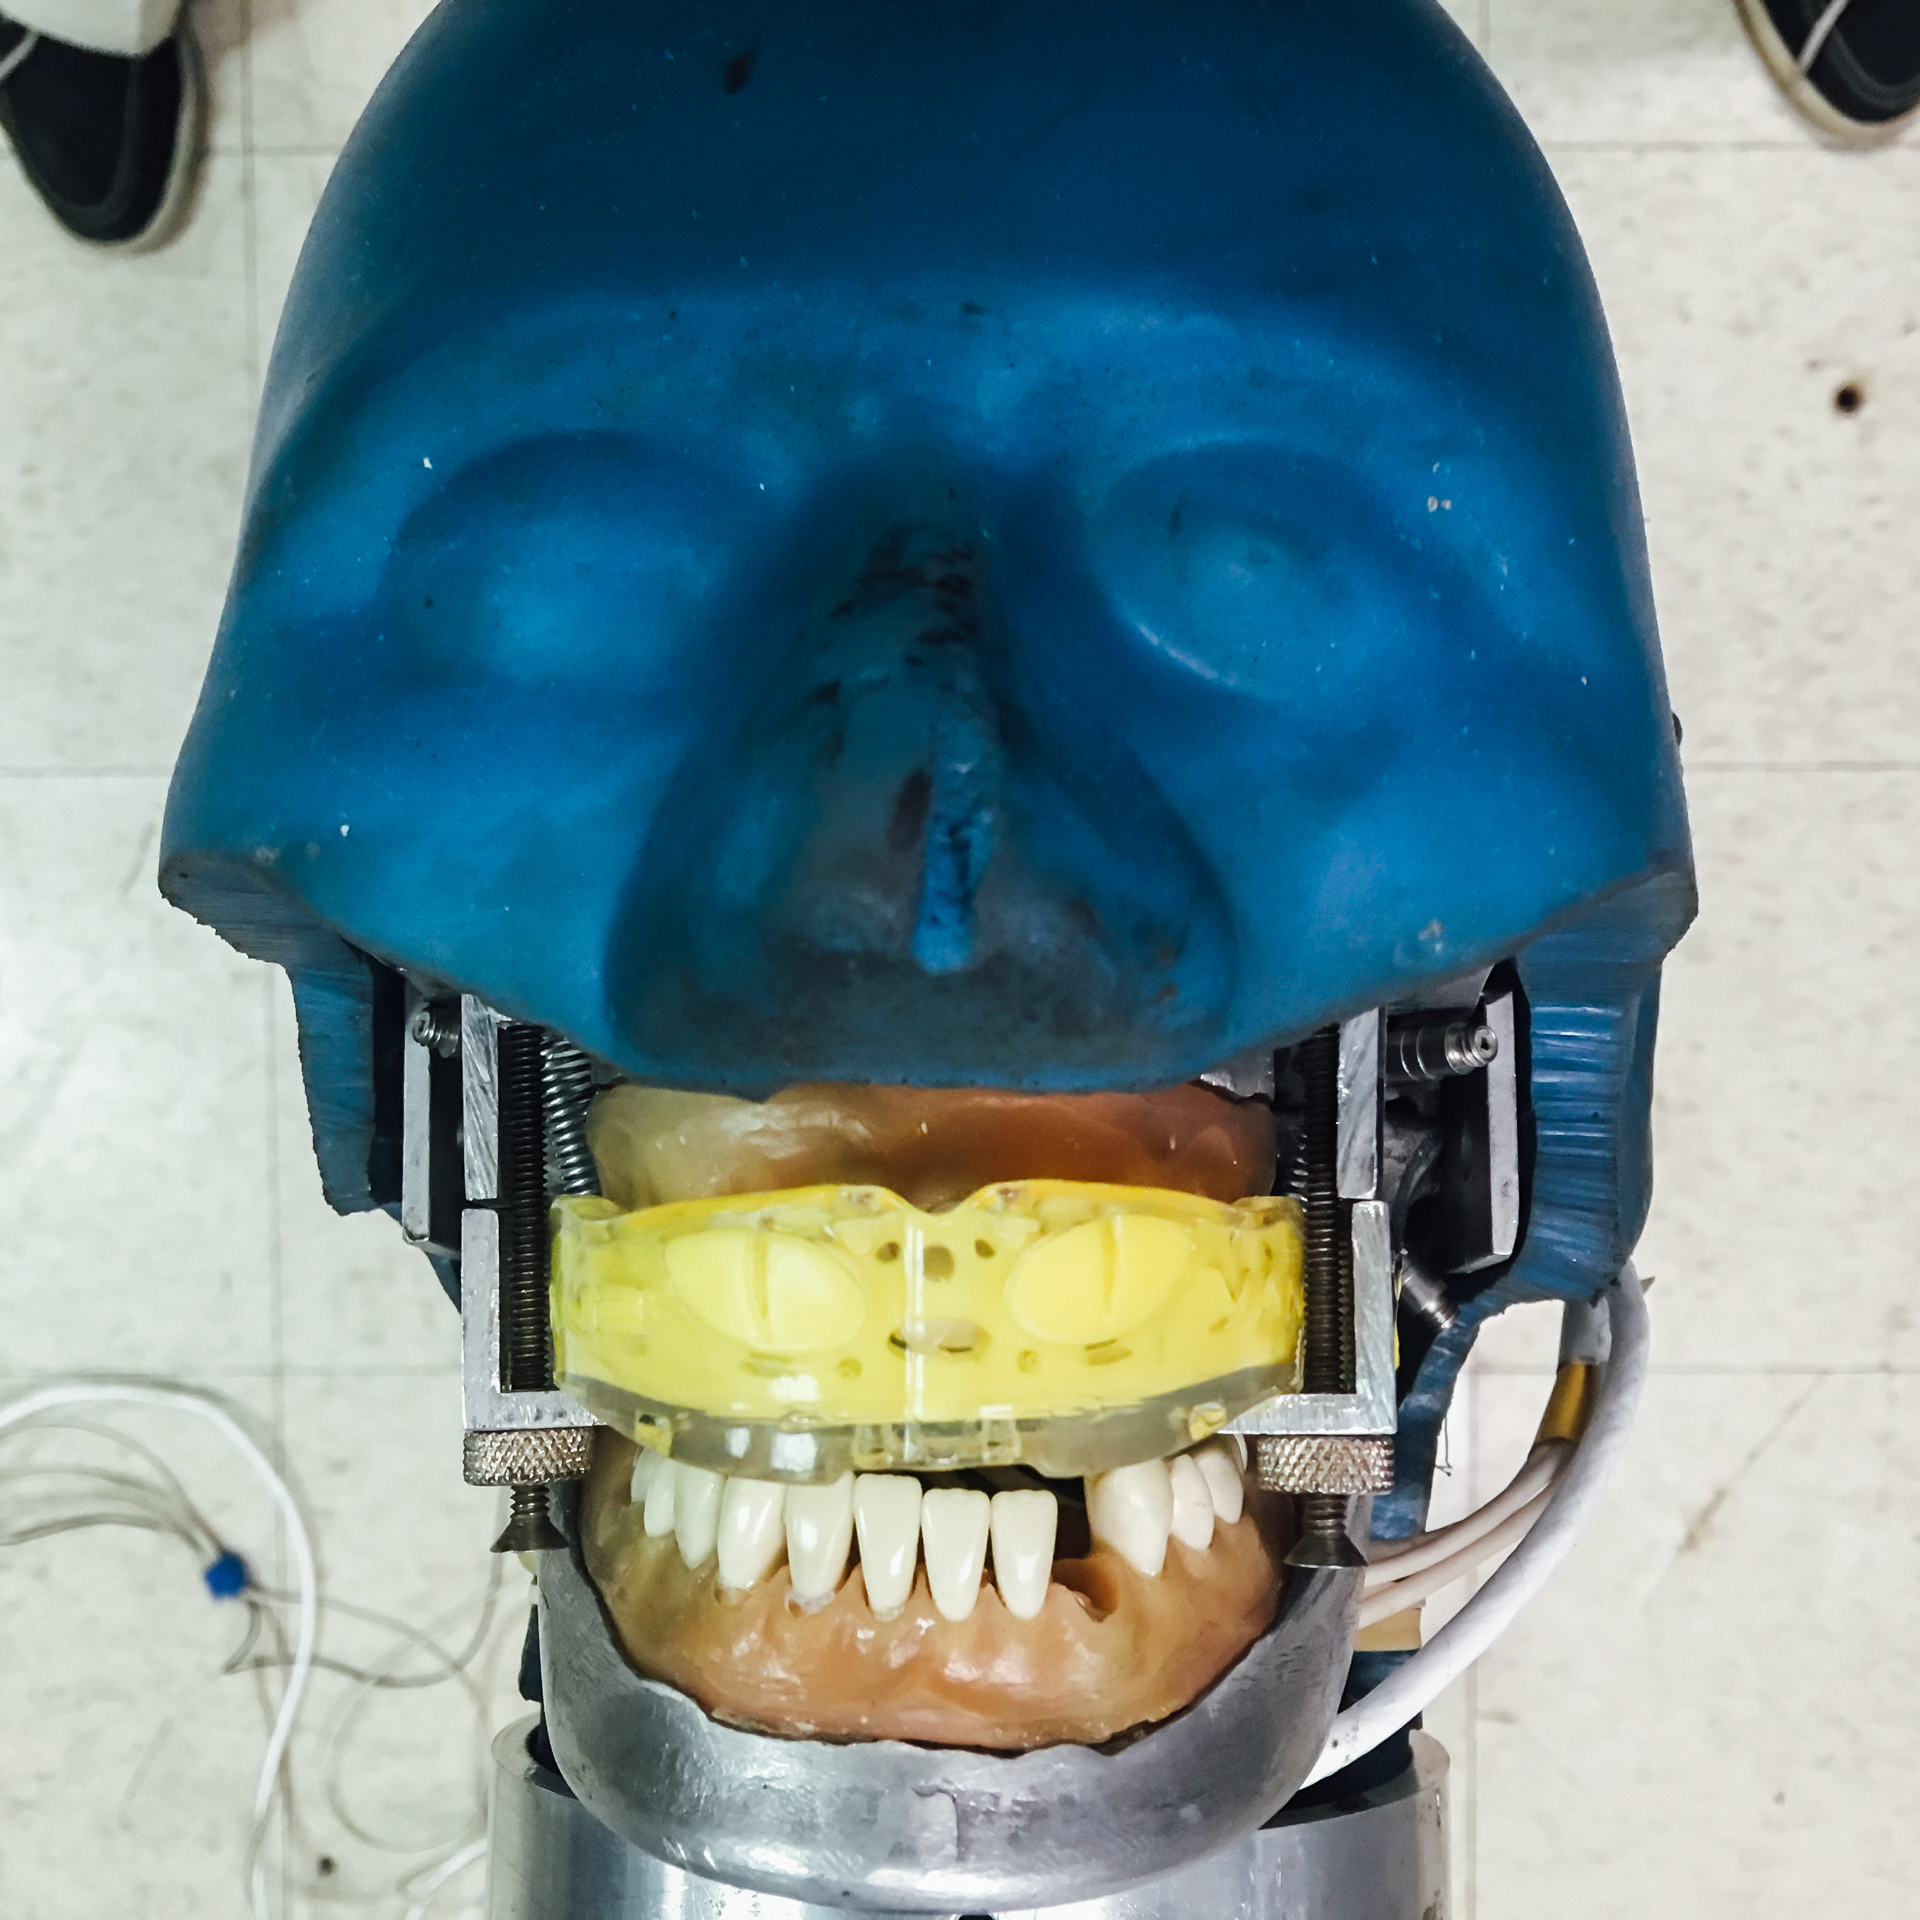 Figure 2b: Modified headform wearing mouthguard that is secured by clamps